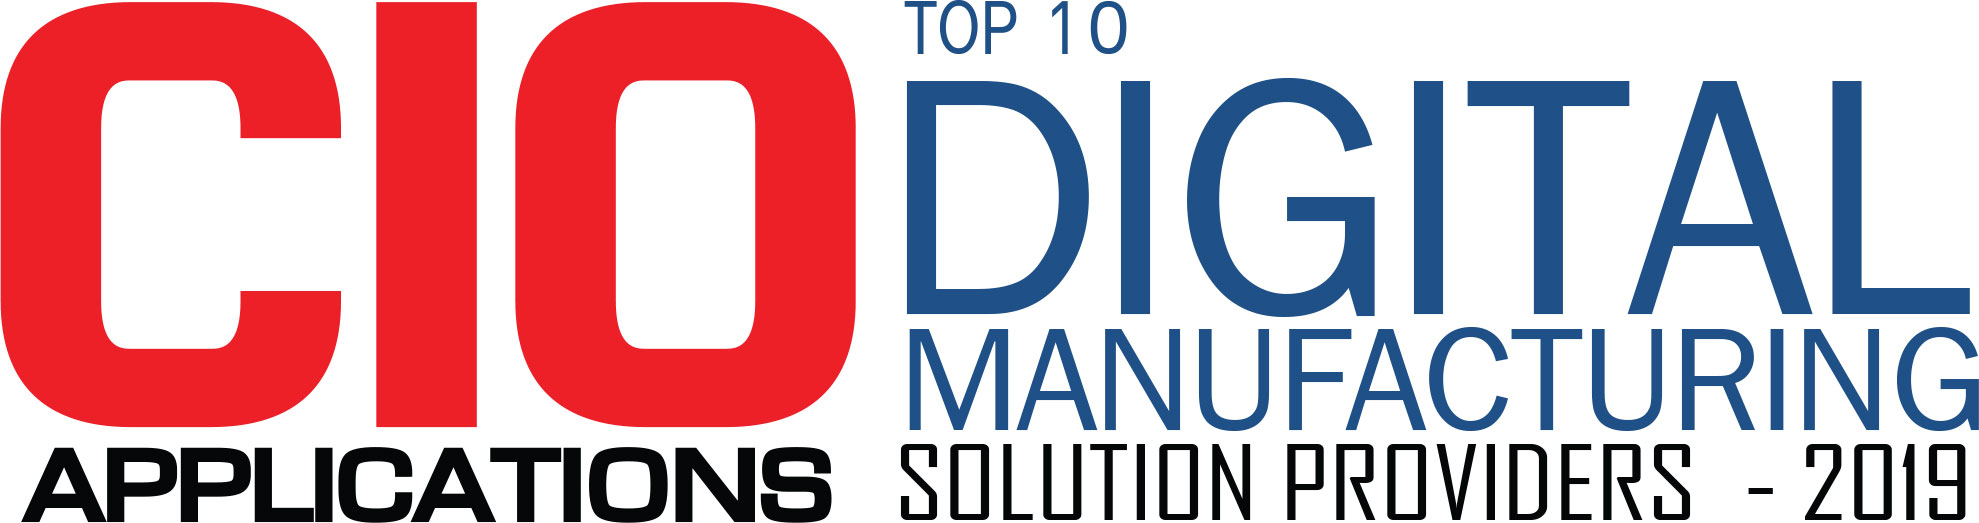 Top 10 Digital Manufacturing Solution Companies - 2019